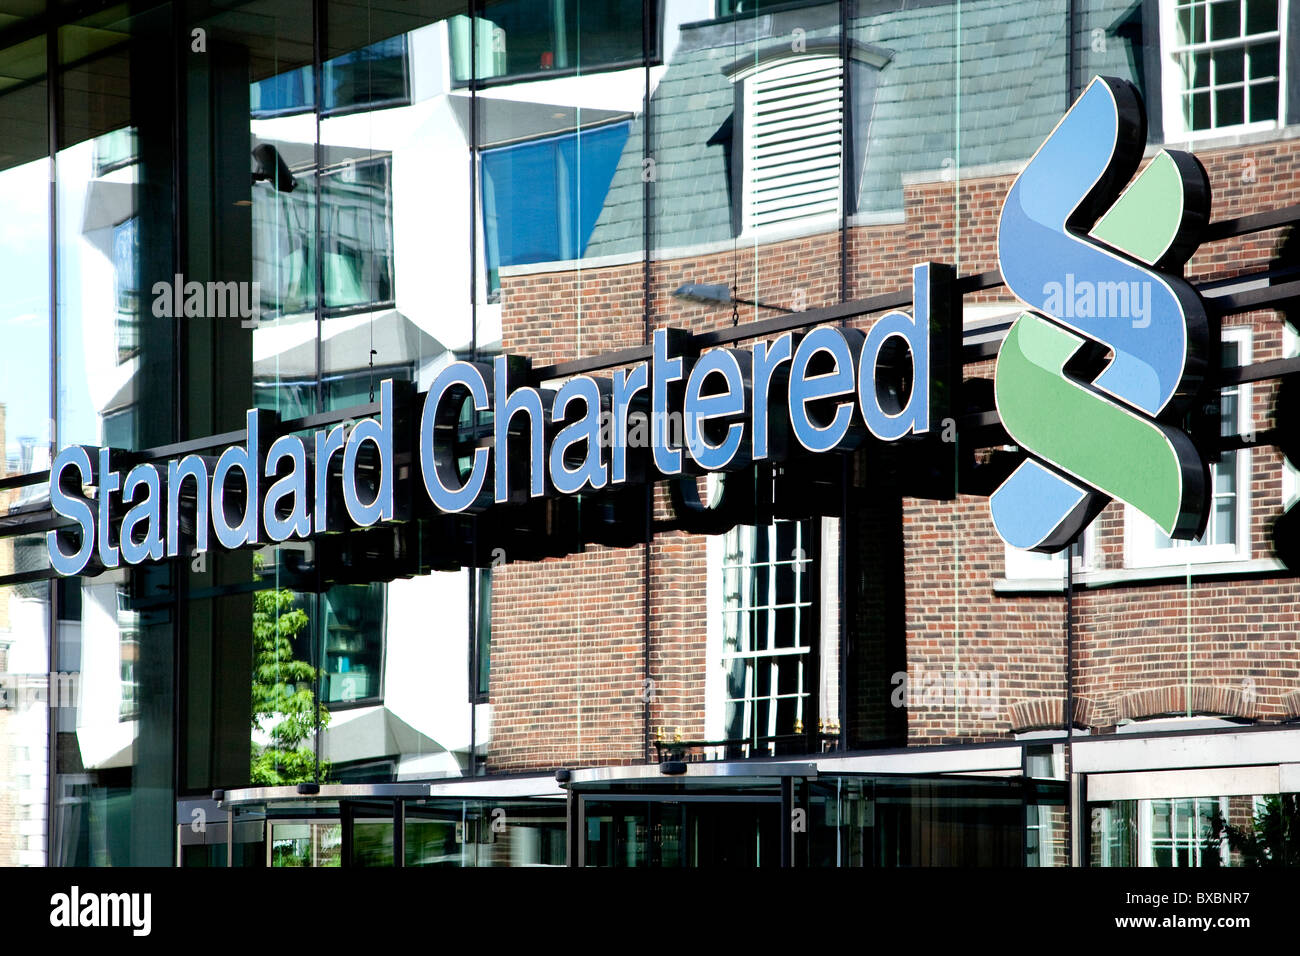 Headquarters of the Standard Chartered Bank in London, England Stock Photo - Alamy